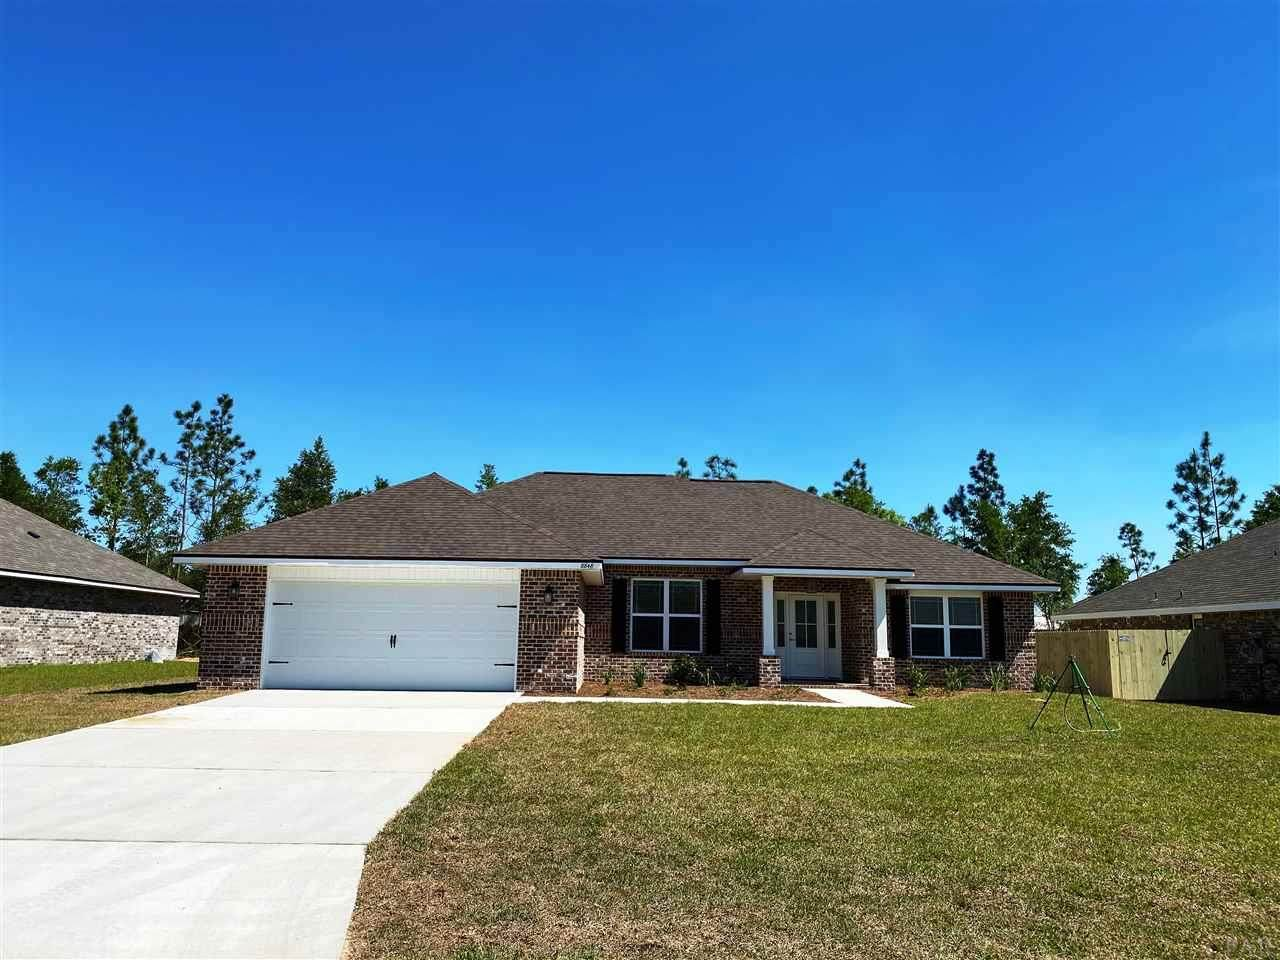 5183 Gaineswood Dr - Photo 1